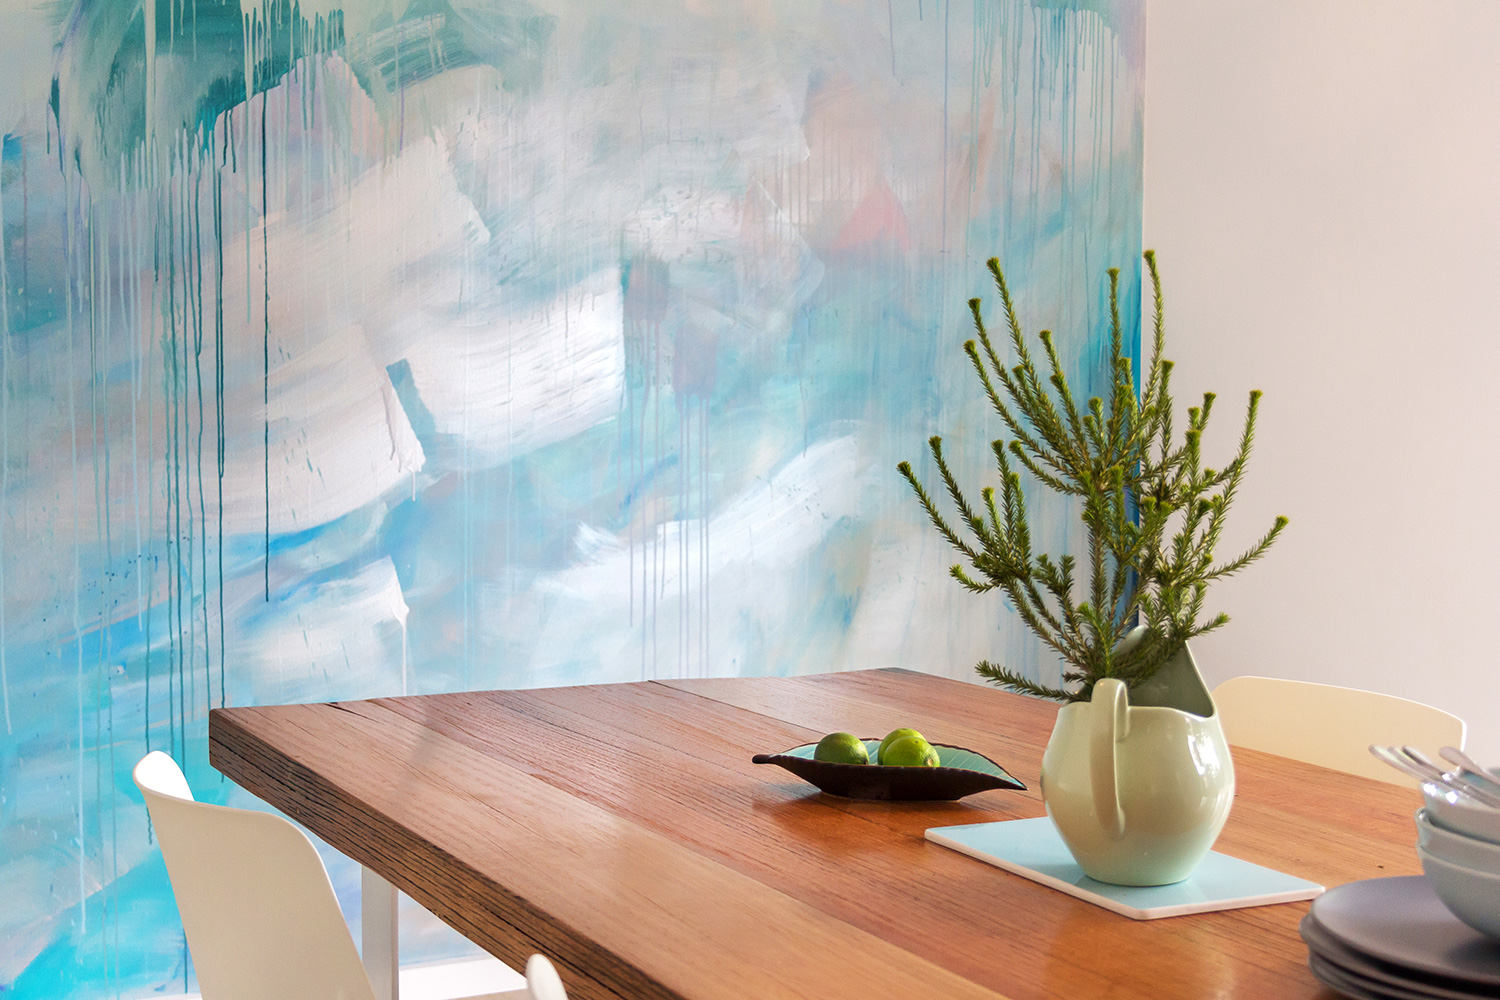 Ocean water painted contemporary abstract mural in kitchen featuring a wave, drips and geometric shapes, the artwork has movement and reflects light.